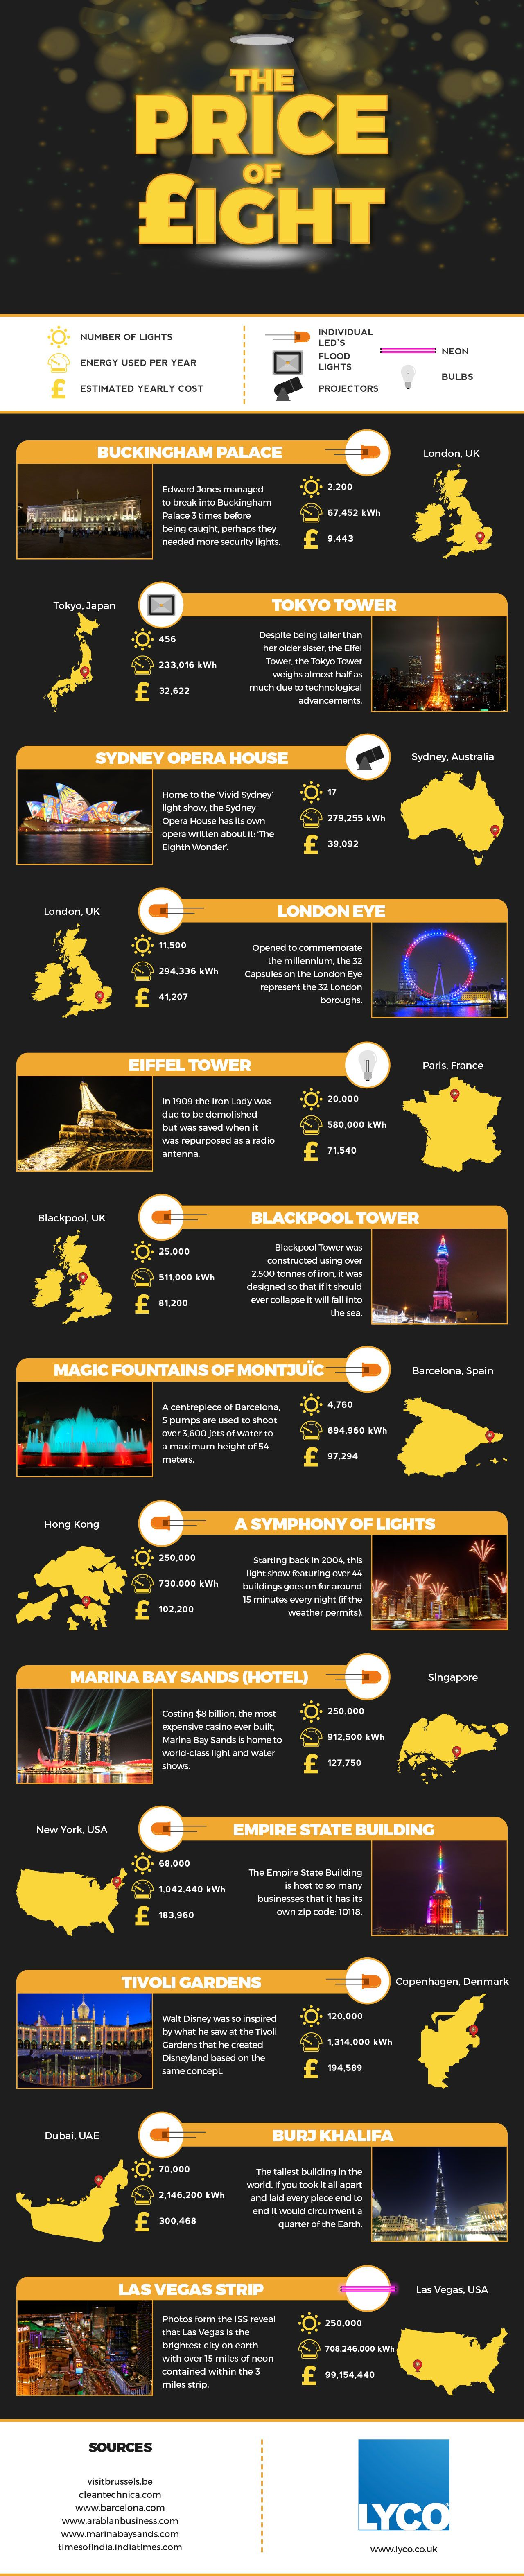 The Price of Light #Infographic